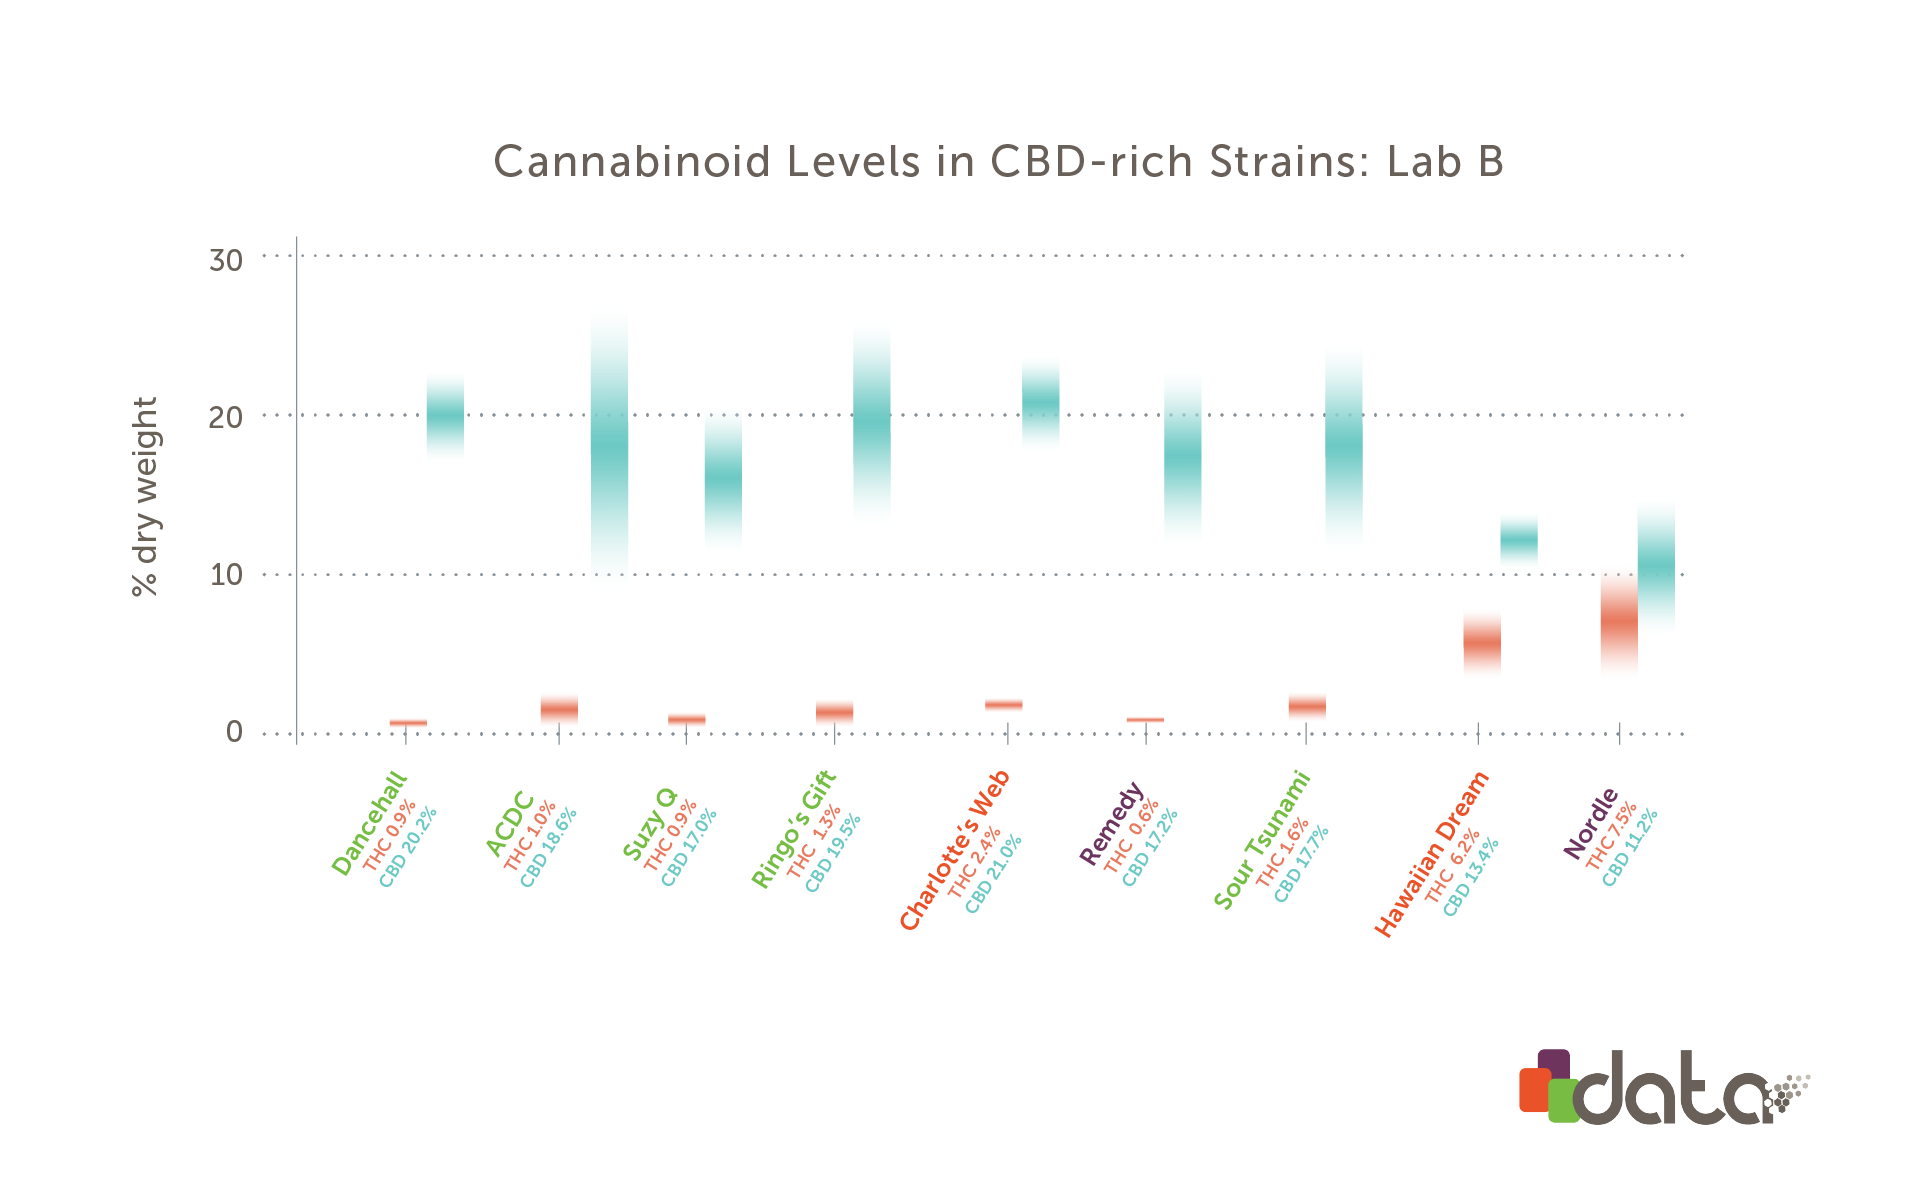 Graph: Comparison of high cbd weed strains from Lab B